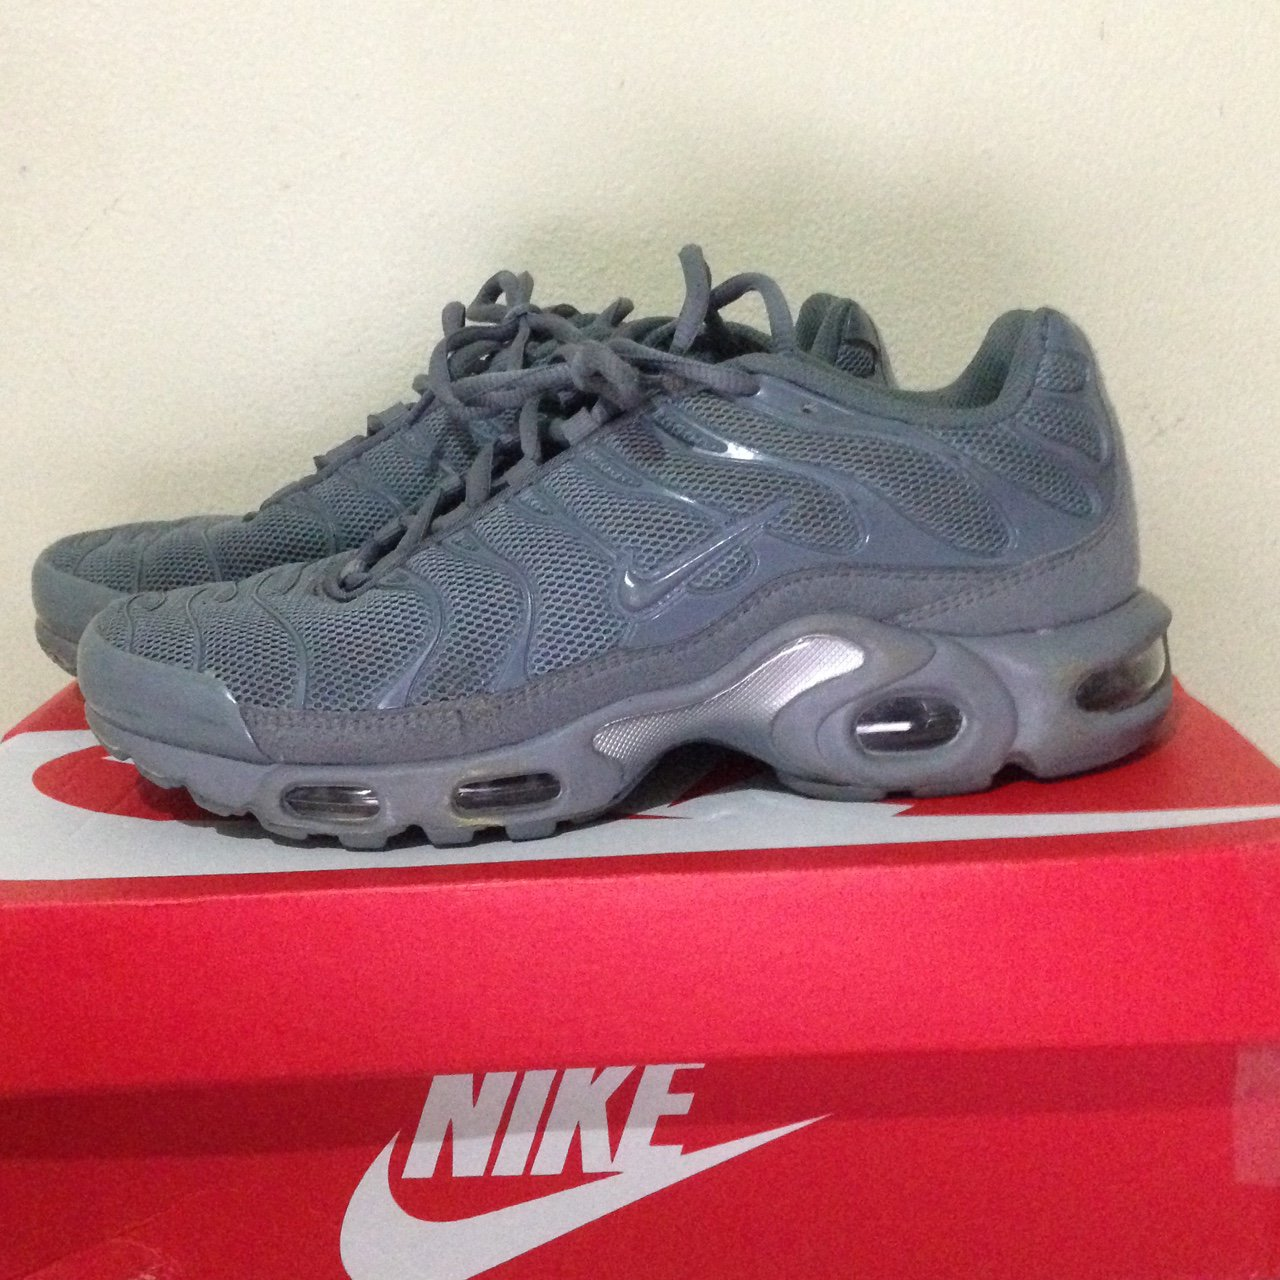 297c20e8d5e All grey Nike air max plus tn. Size US 7 in good condition a - Depop